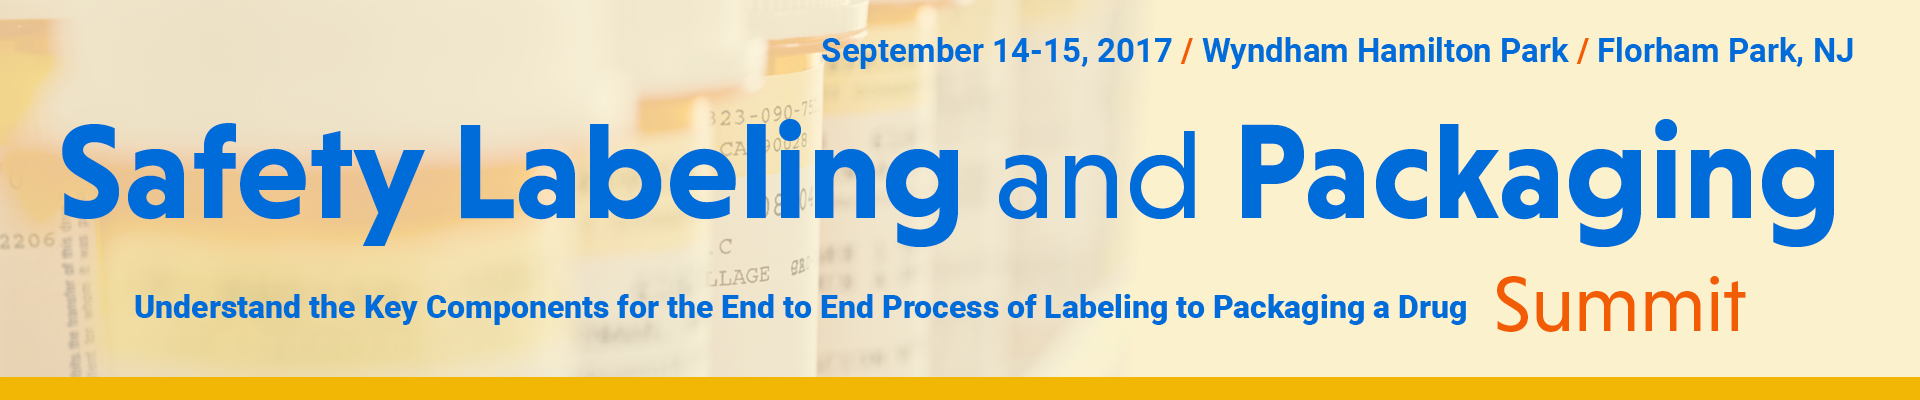 Safety Labeling and Packaging Summit